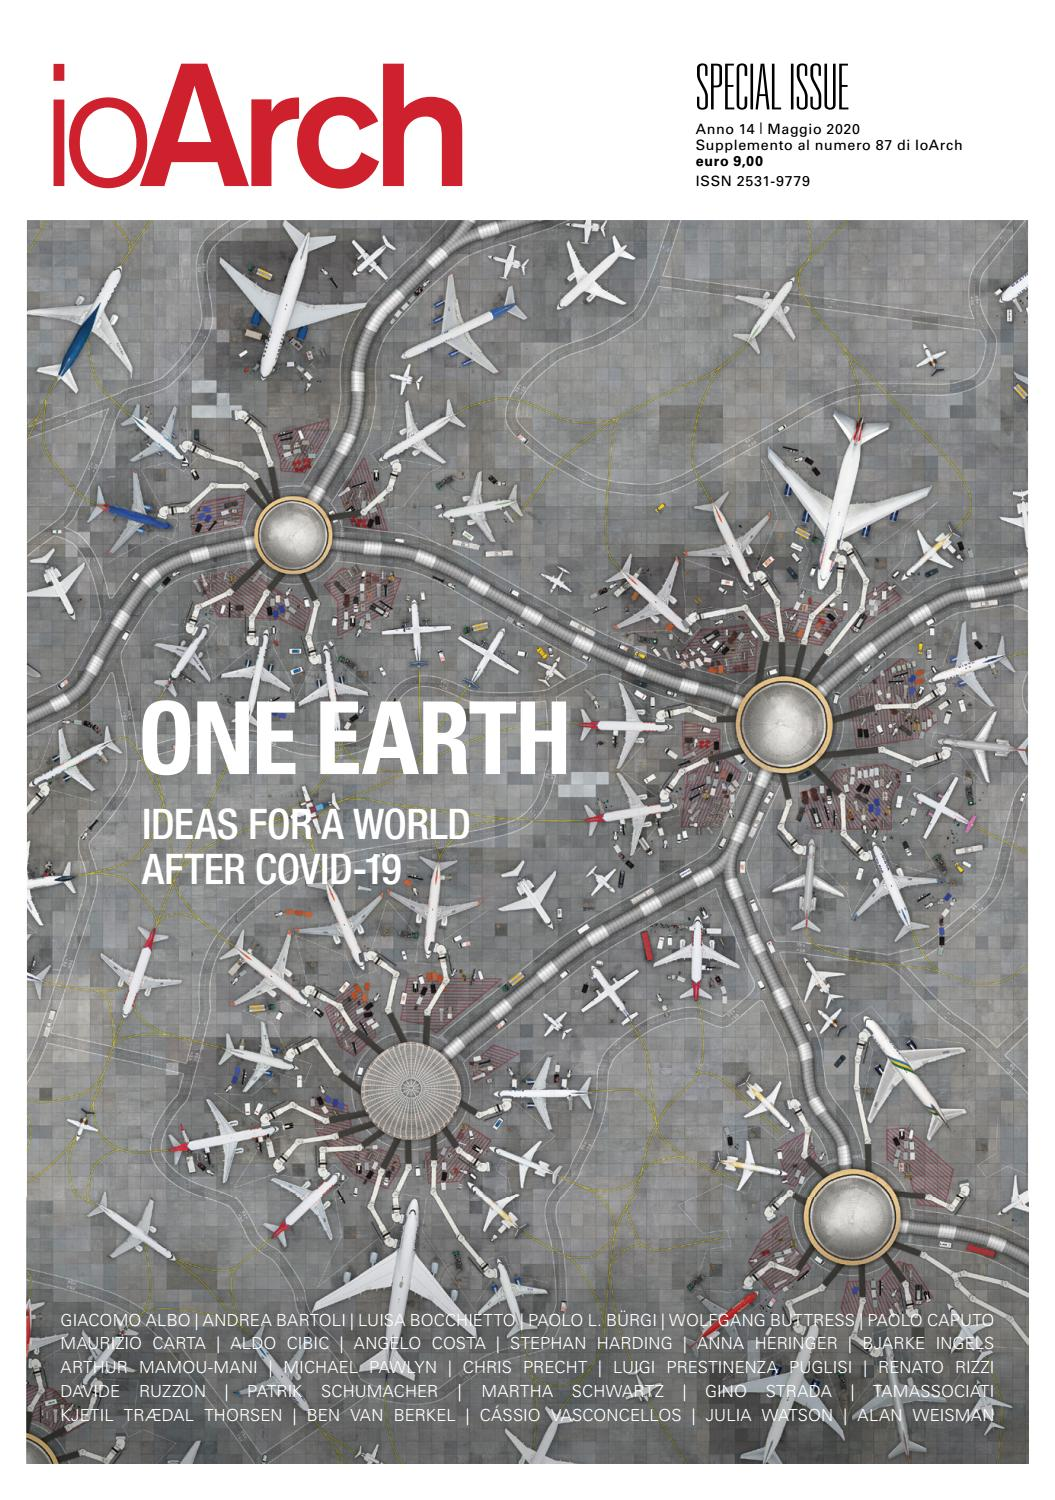 Ioarch Special Issue One Earth Ideas For A World After Covid 19 By Redazione Ioarch Issuu